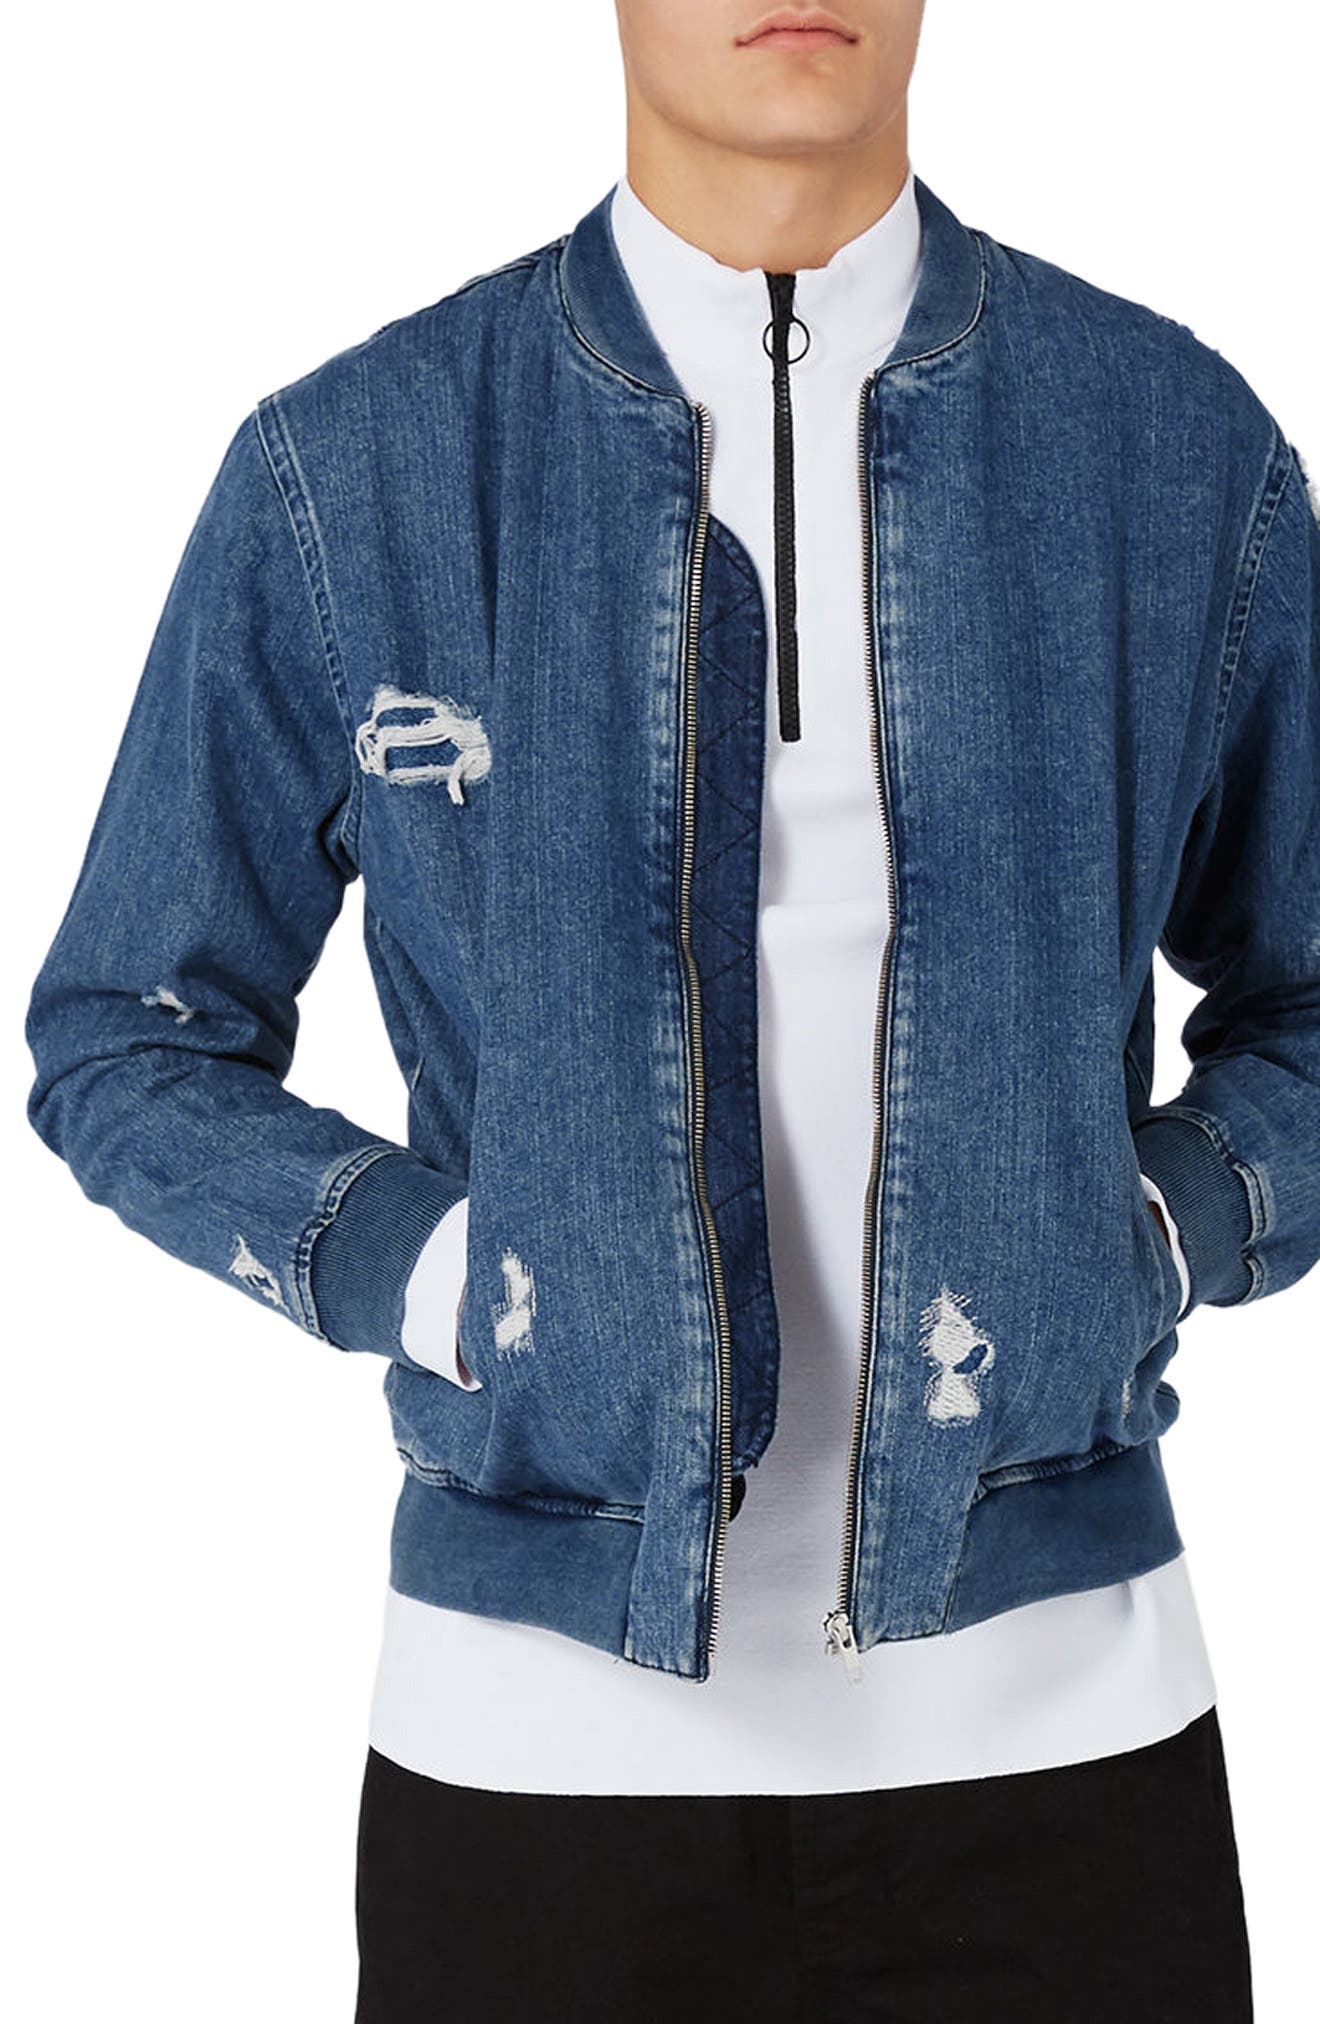 Alternate Image 1 Selected - Topman Distressed Denim Bomber Jacket